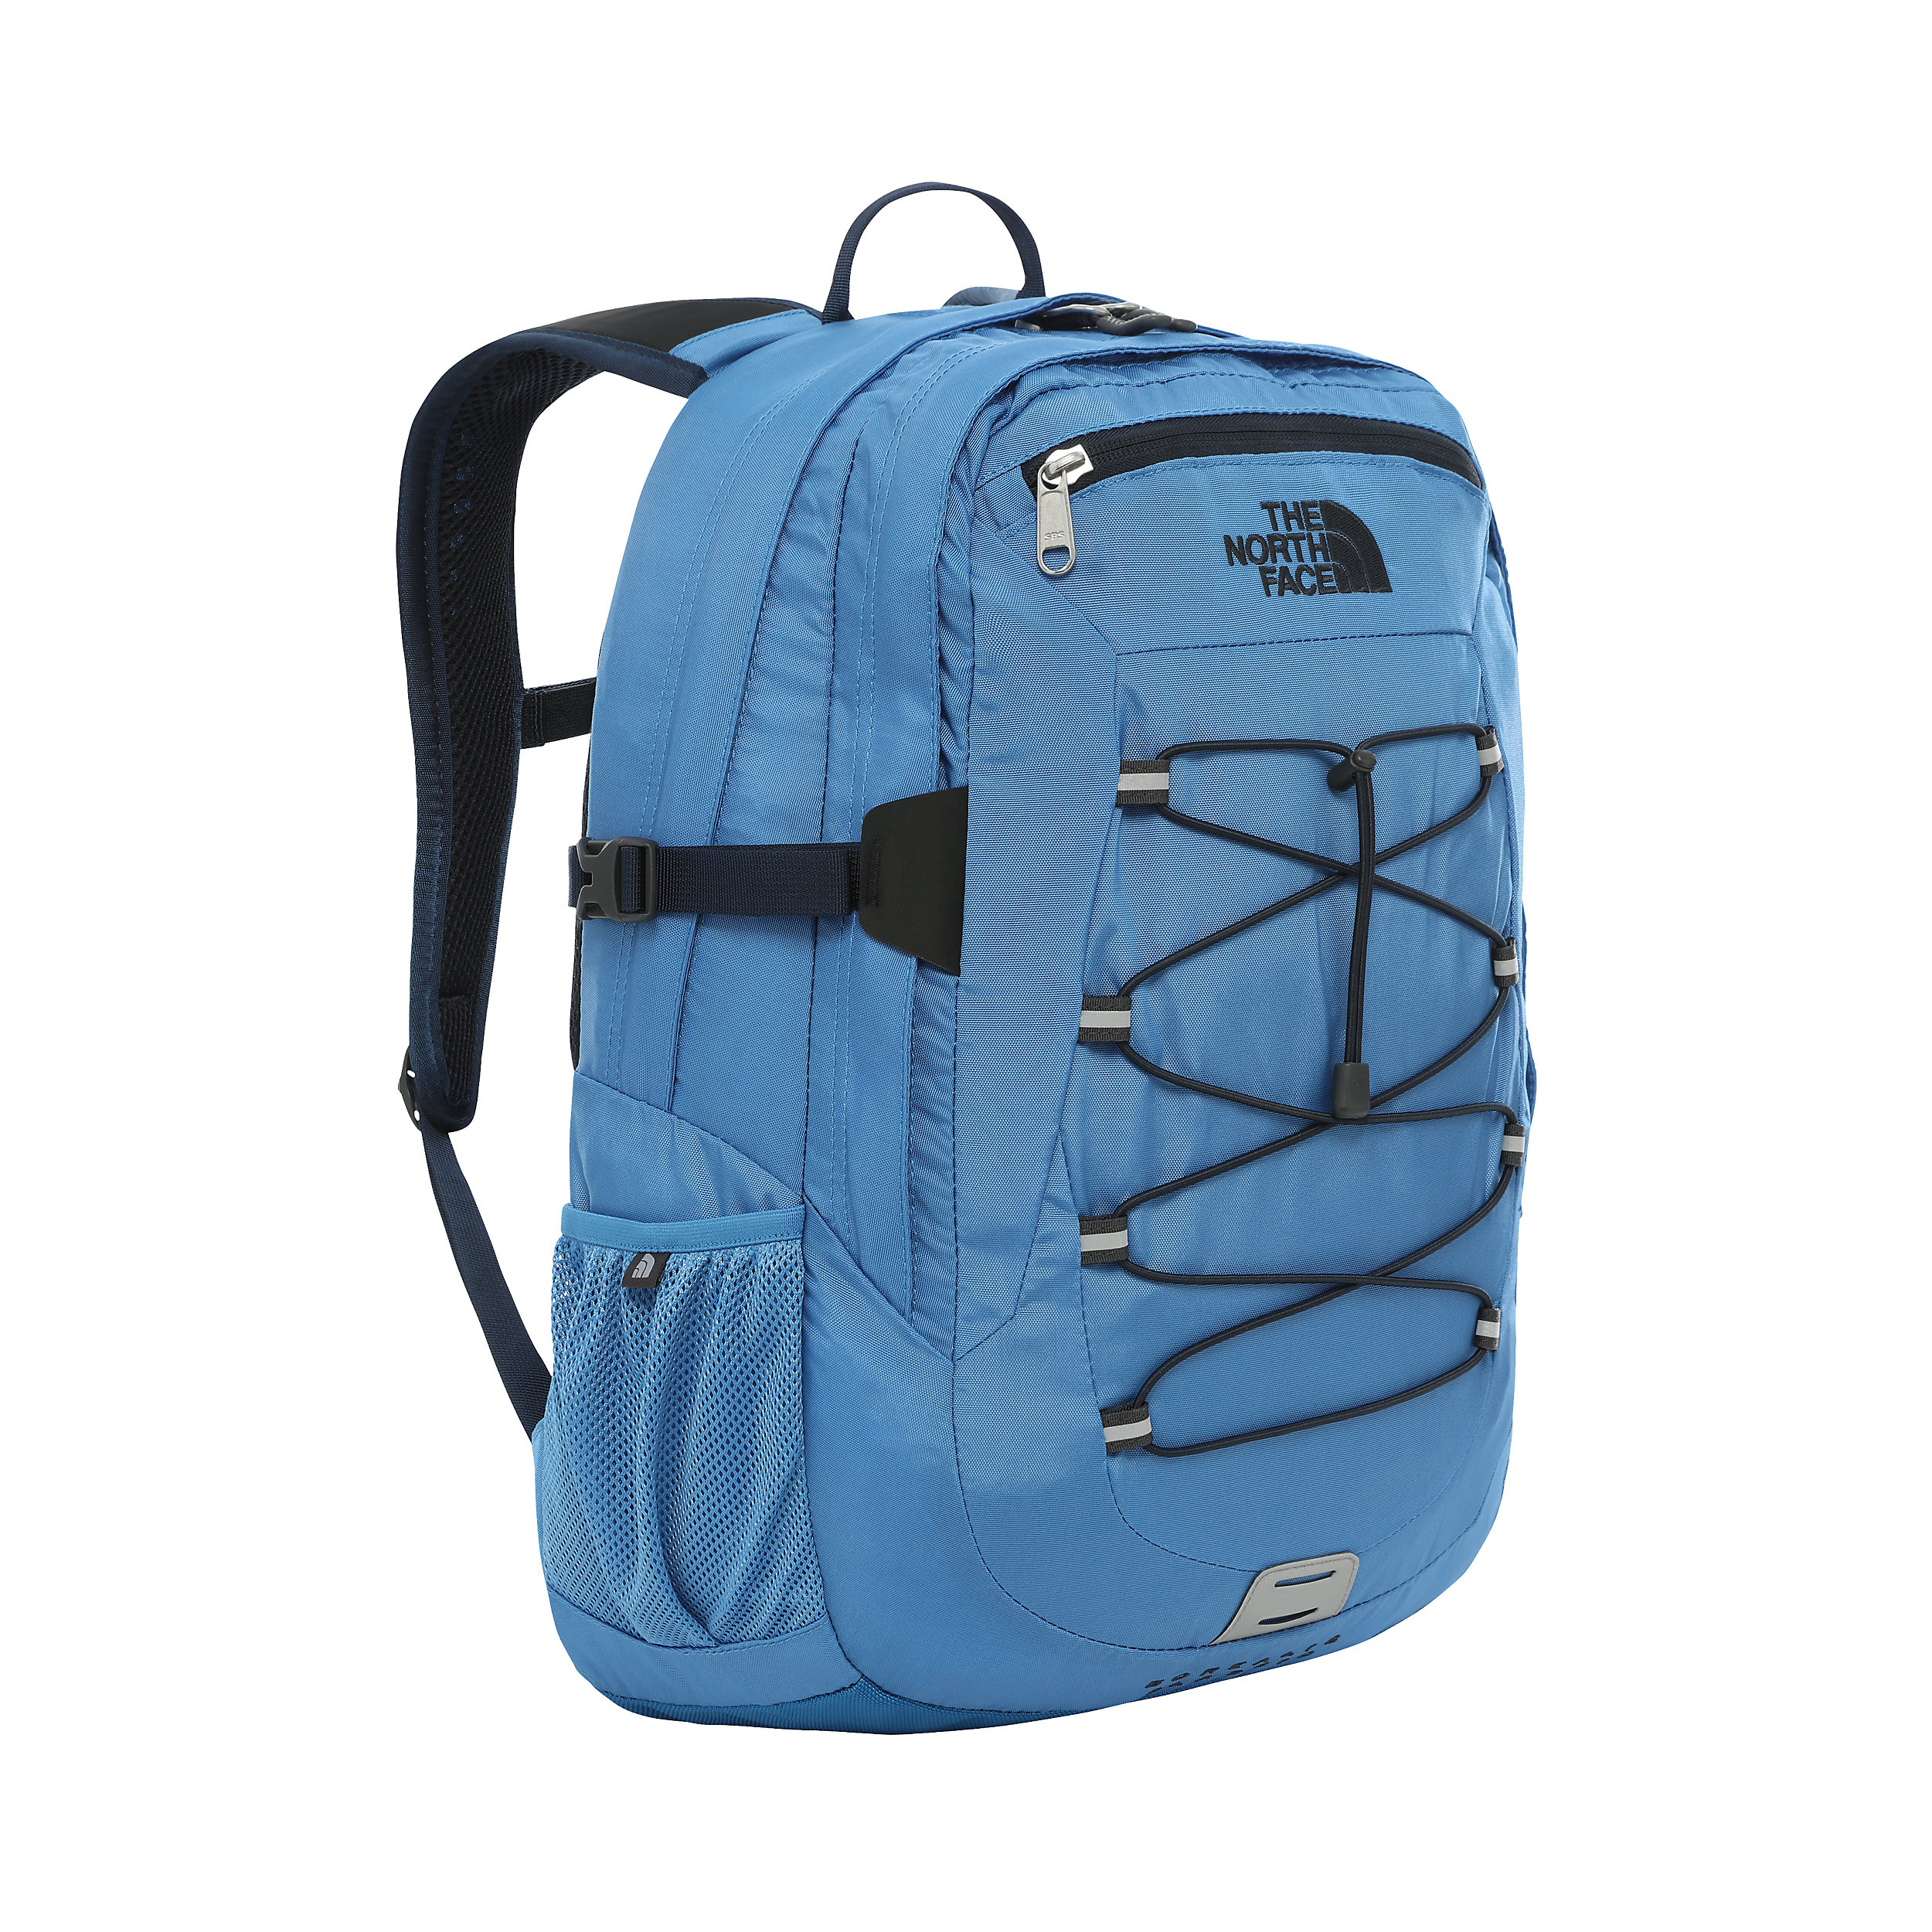 Backpack Borealis Classic 13 inch L 29 Liter